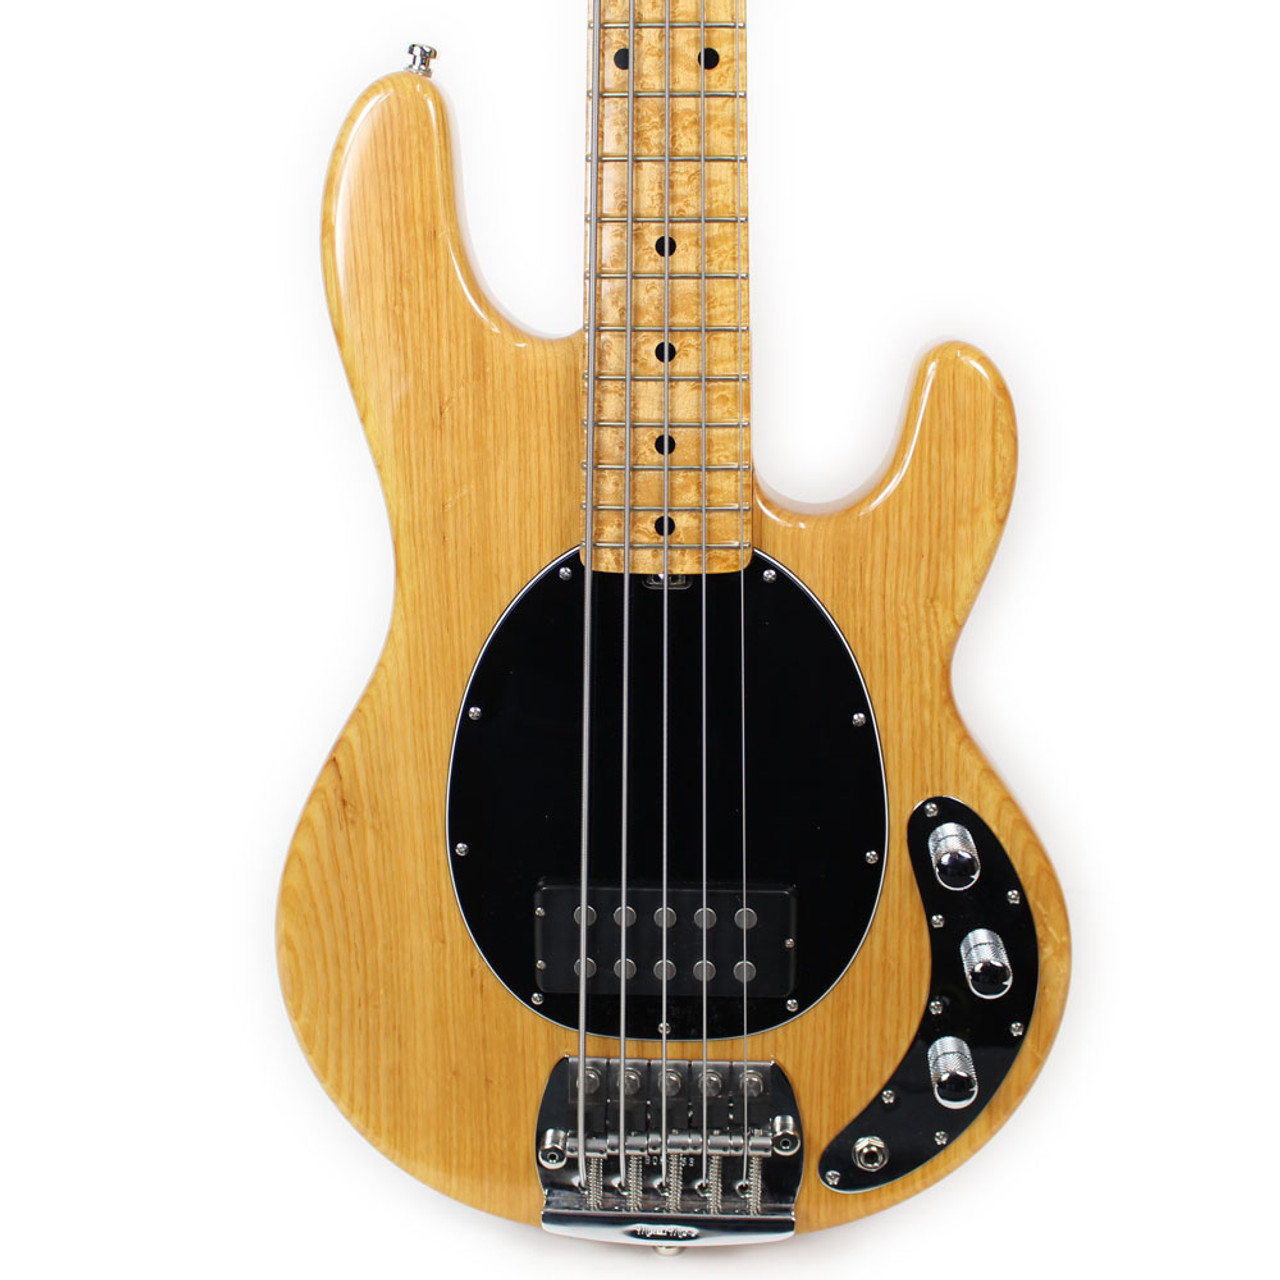 used musicman stingray classic 5 string electric bass guitar in natural finish cream city music. Black Bedroom Furniture Sets. Home Design Ideas